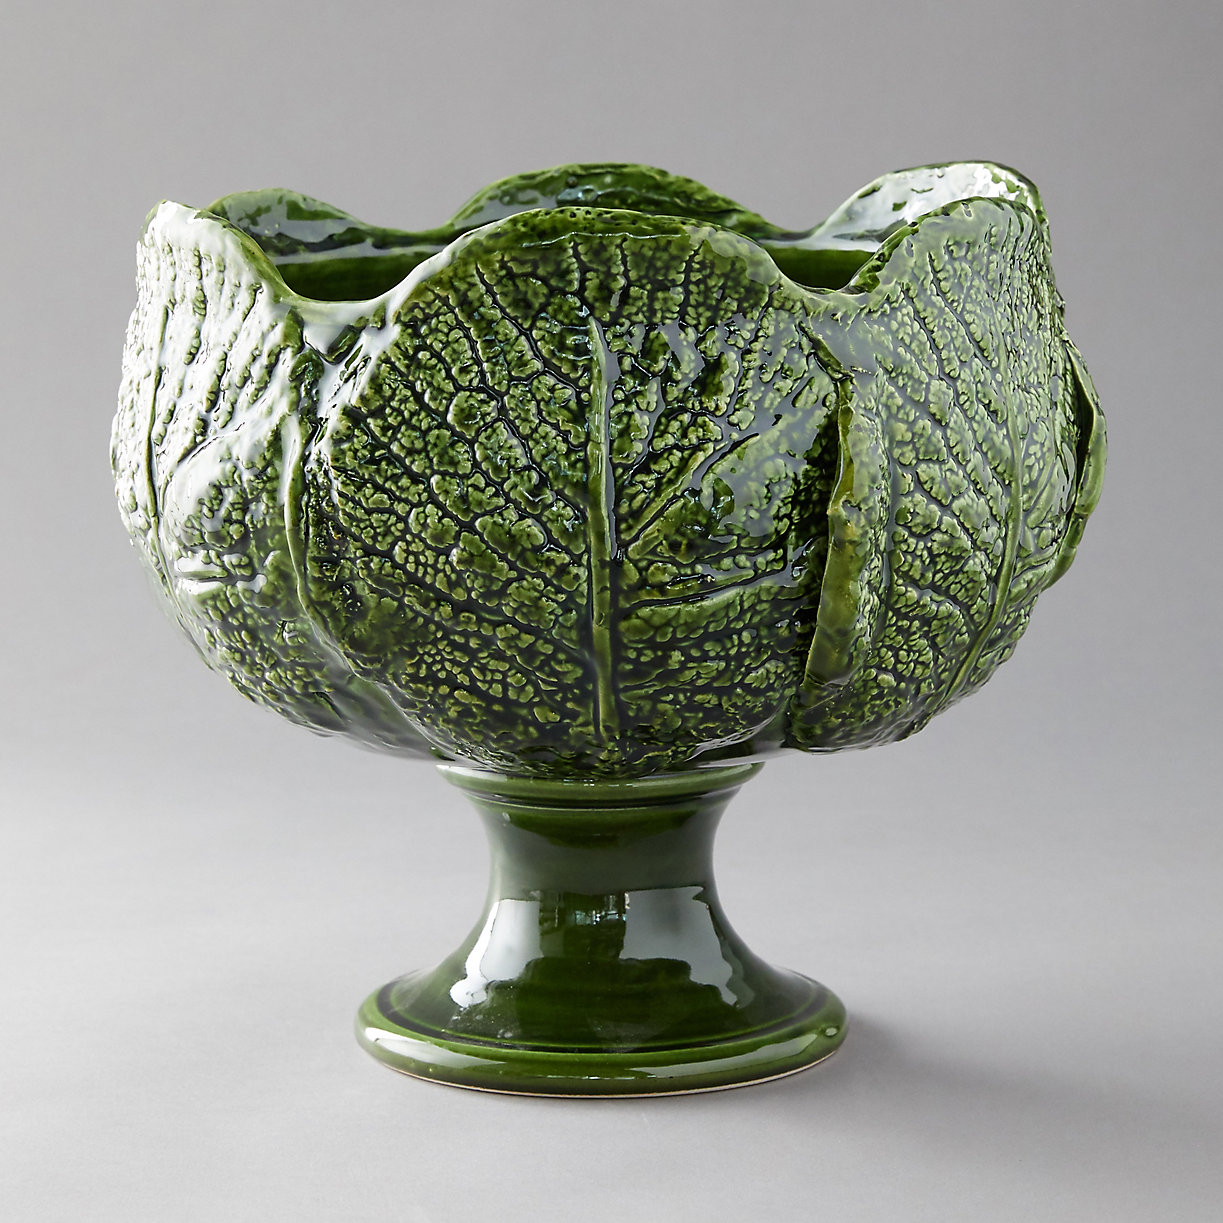 Kale Leaf Serving Bowl